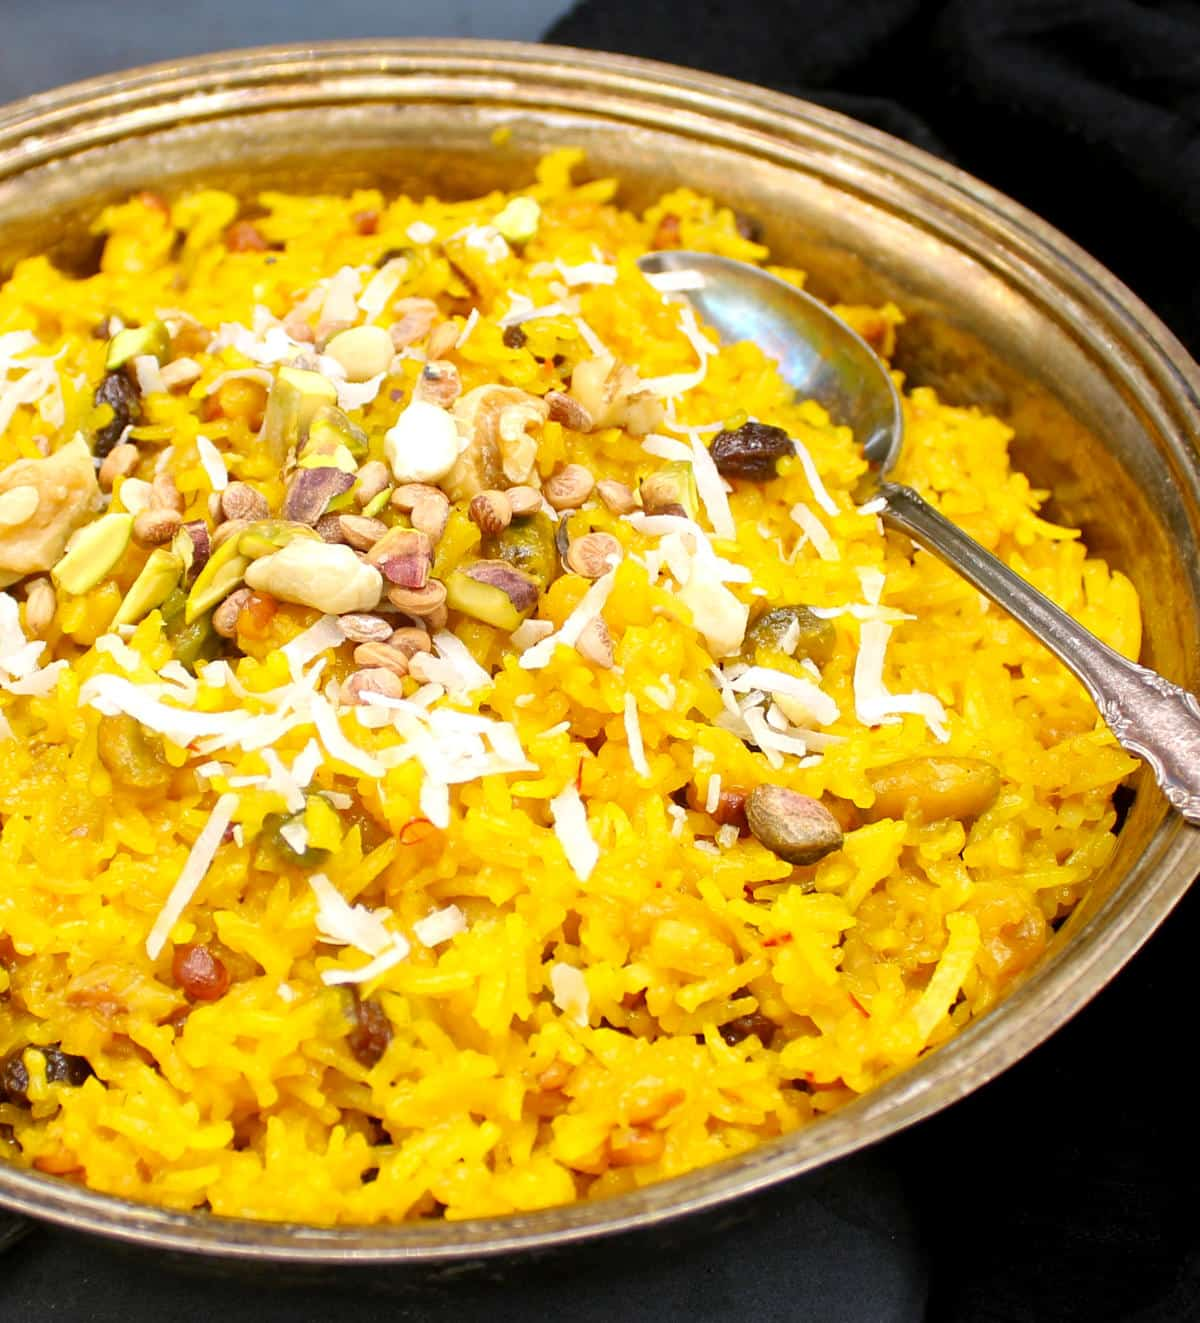 Photo of zarda pulao in a silver serving dish with nuts and dry fruits and shredded coconut.